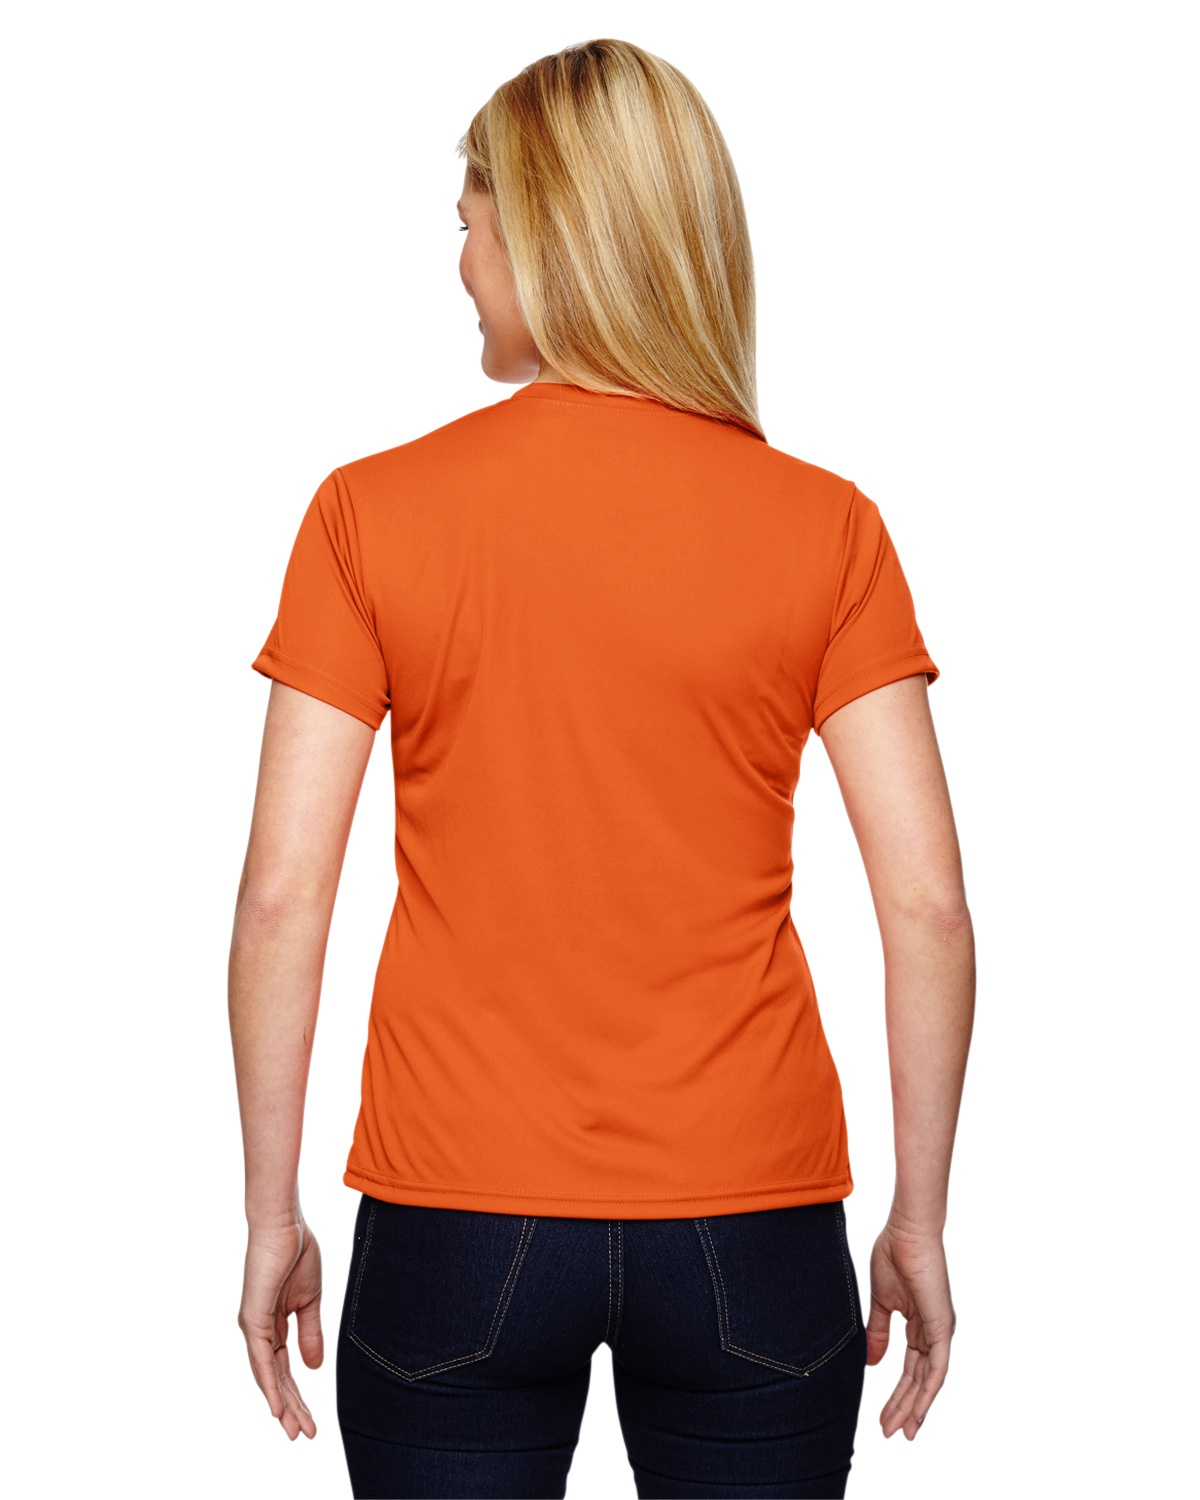 'A4 NW3201 Ladies' Cooling Performance T-Shirt'